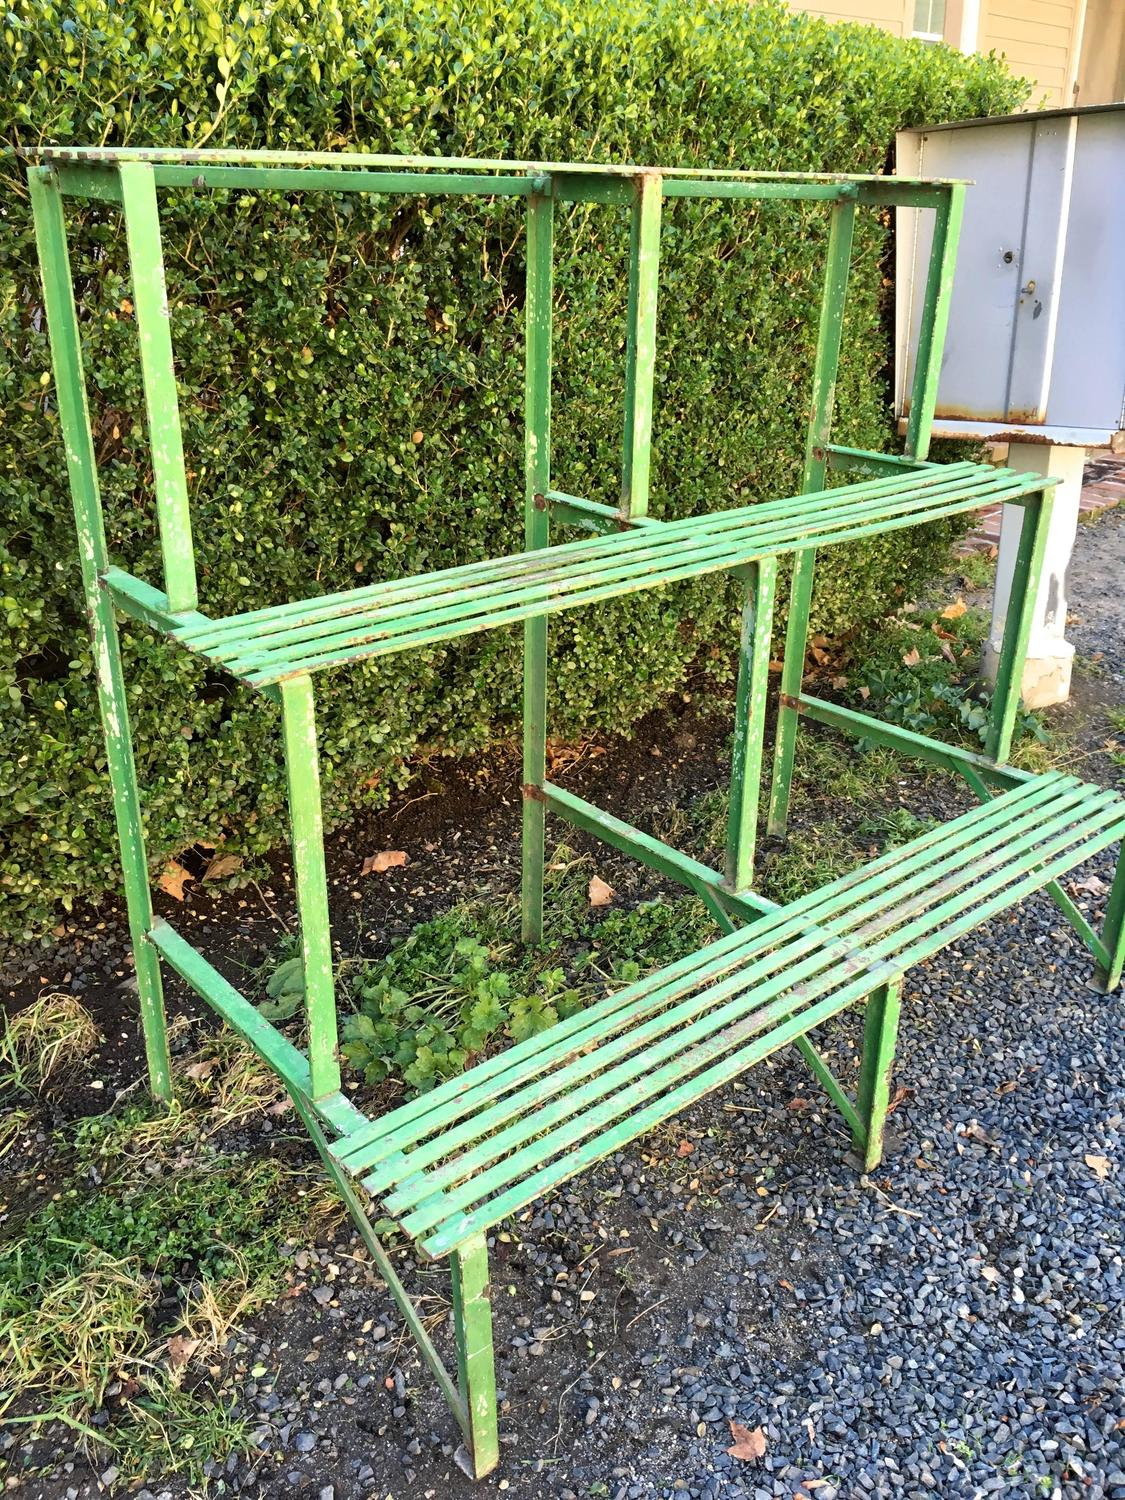 Three tiered french wrought iron plant stand circa 1900 for sale at 1stdibs - Tiered metal plant stand ...